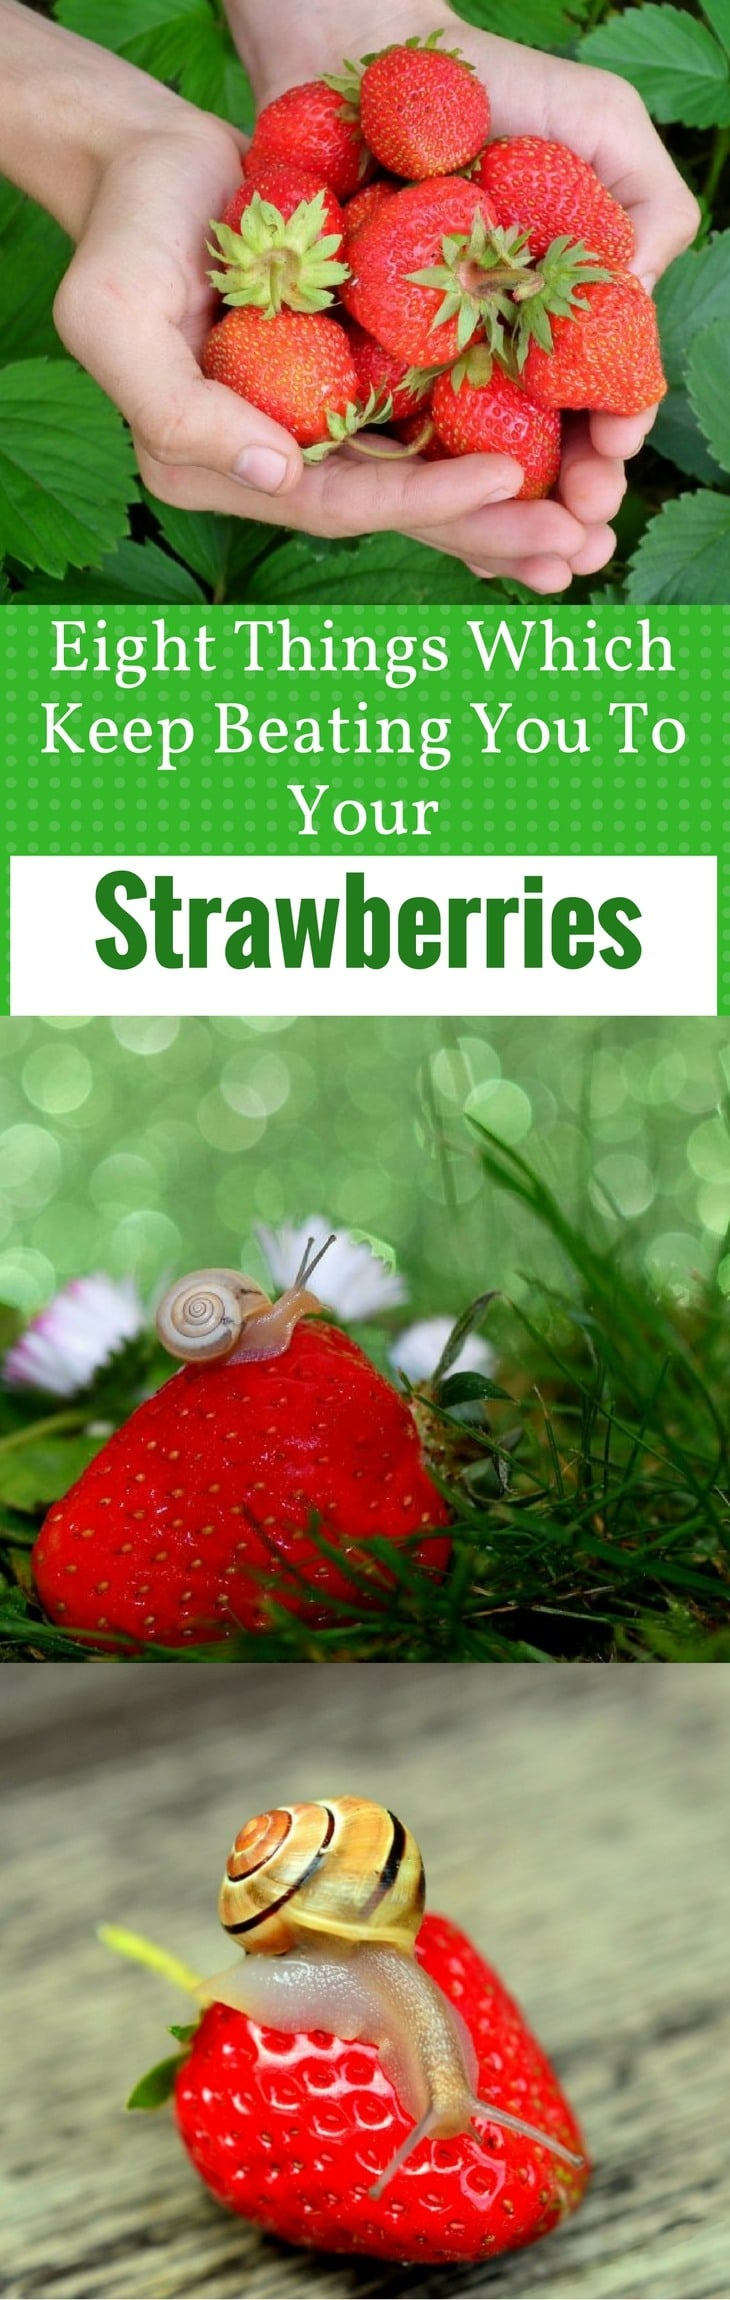 Eight Things Which Keep Beating You To Your - Strawberries